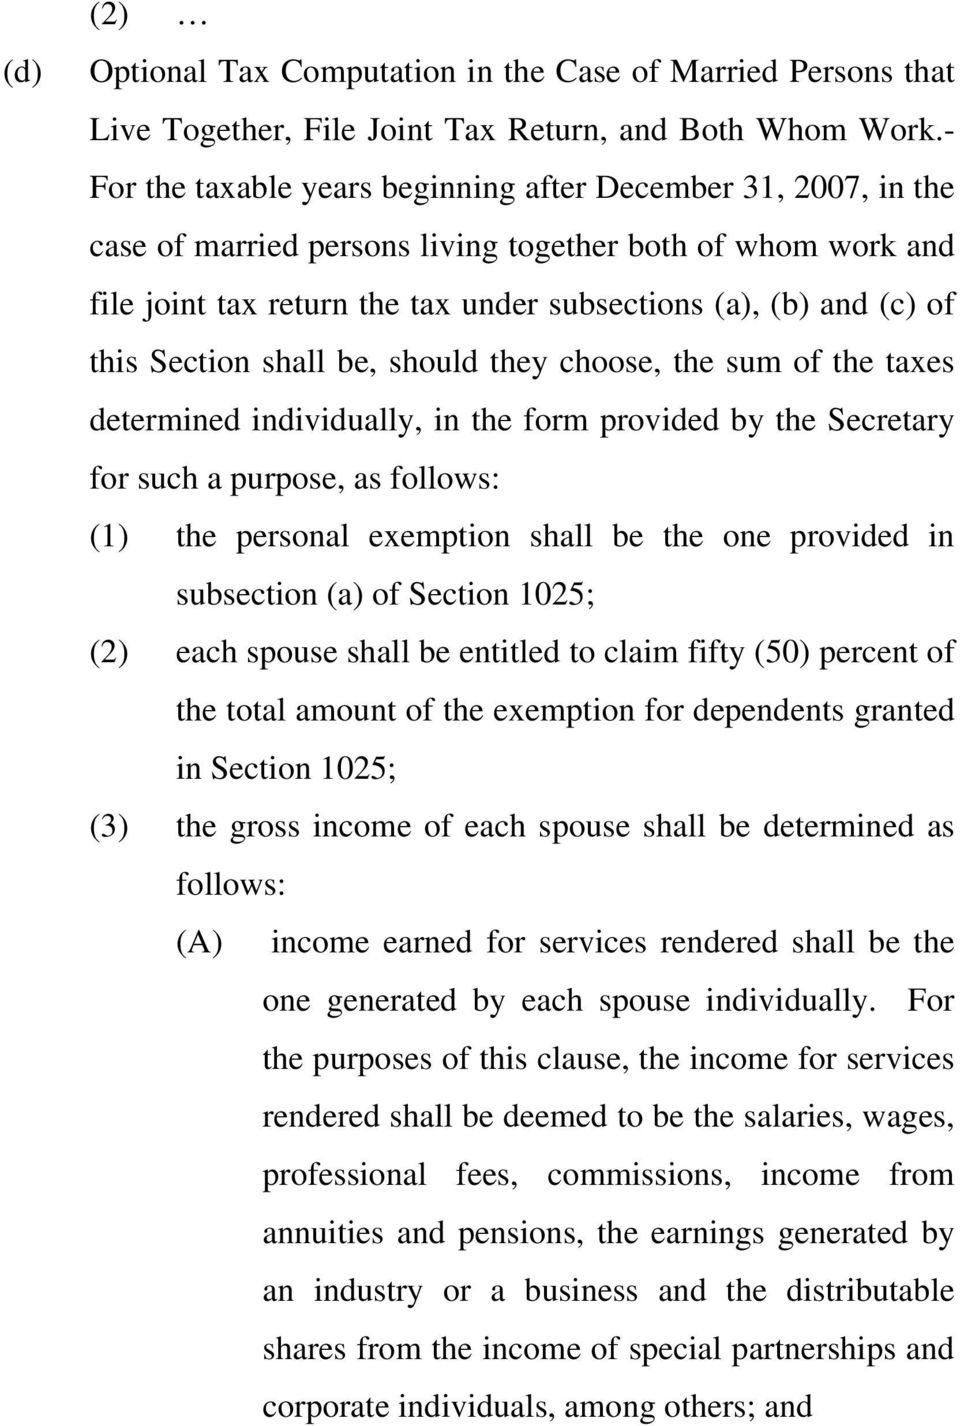 this Section shall be, should they choose, the sum of the taxes determined individually, in the form provided by the Secretary for such a purpose, as follows: (1) the personal exemption shall be the